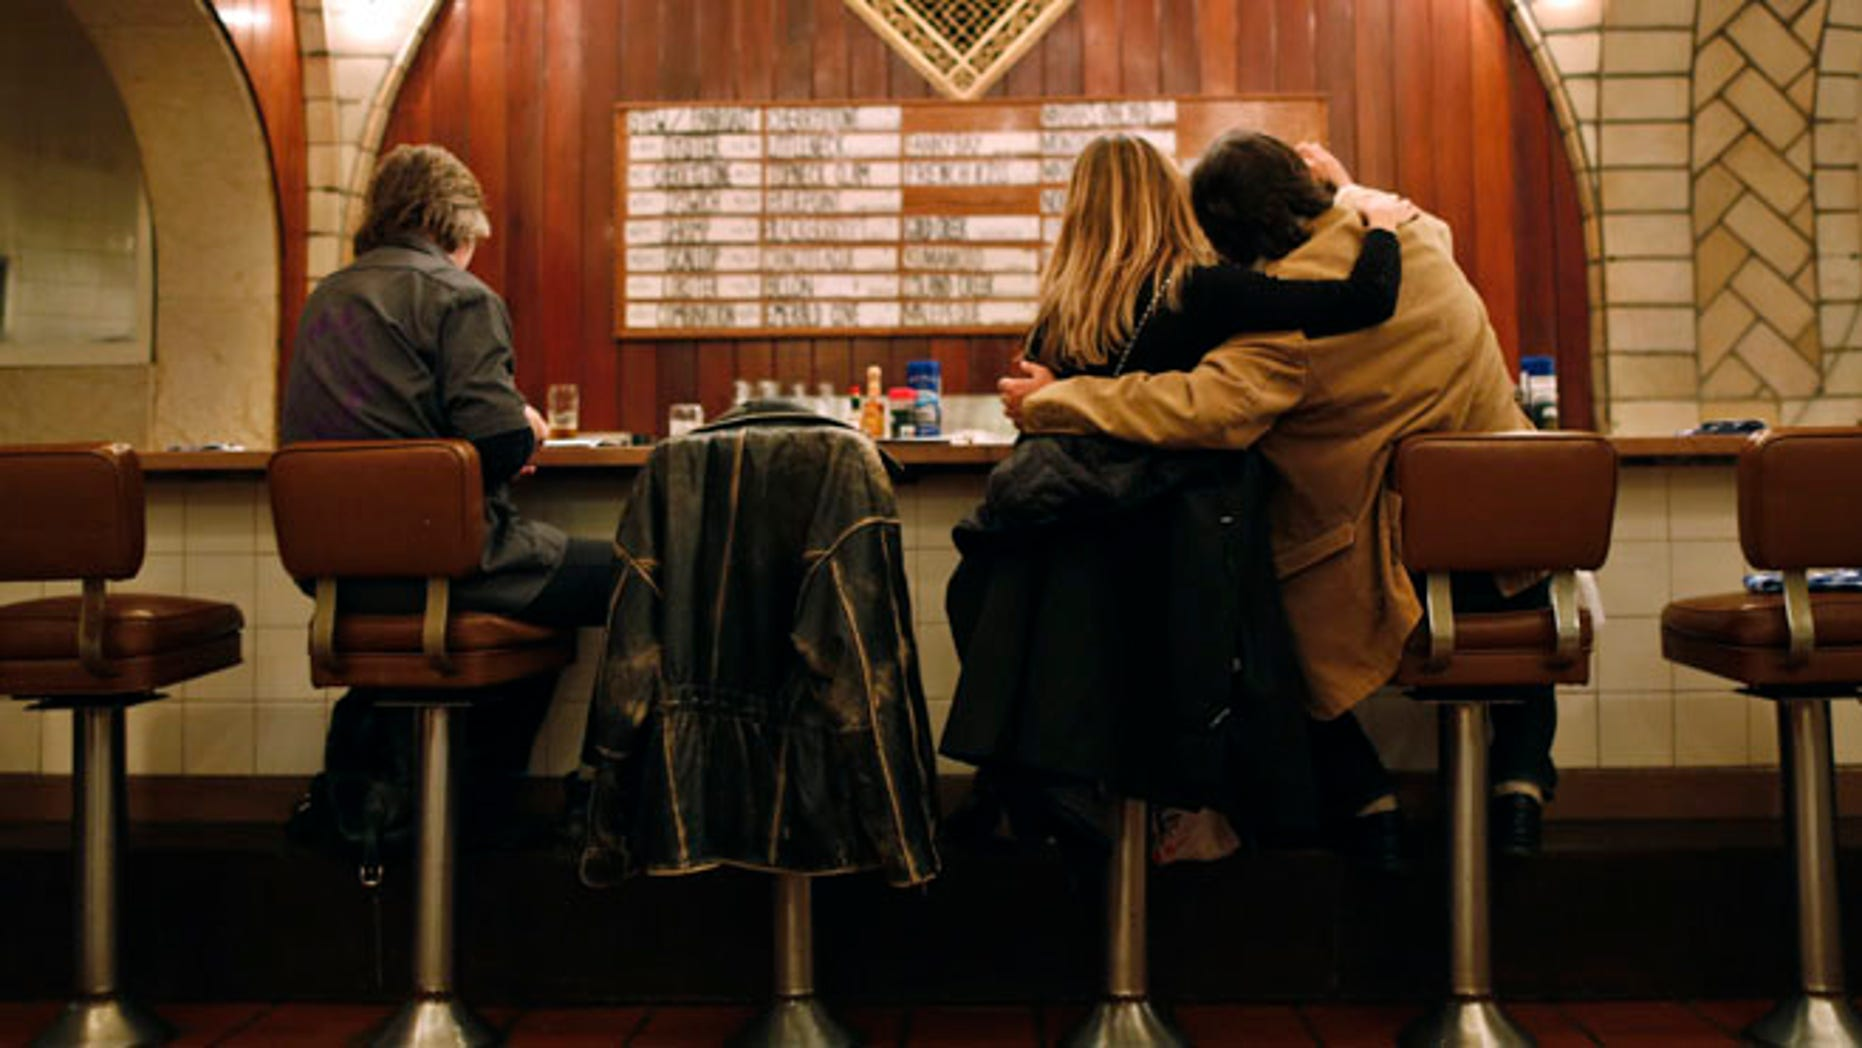 Customers sit at the counter of the Oyster bar in the lower level of Grand Central Terminal in New York, January 29, 2013.